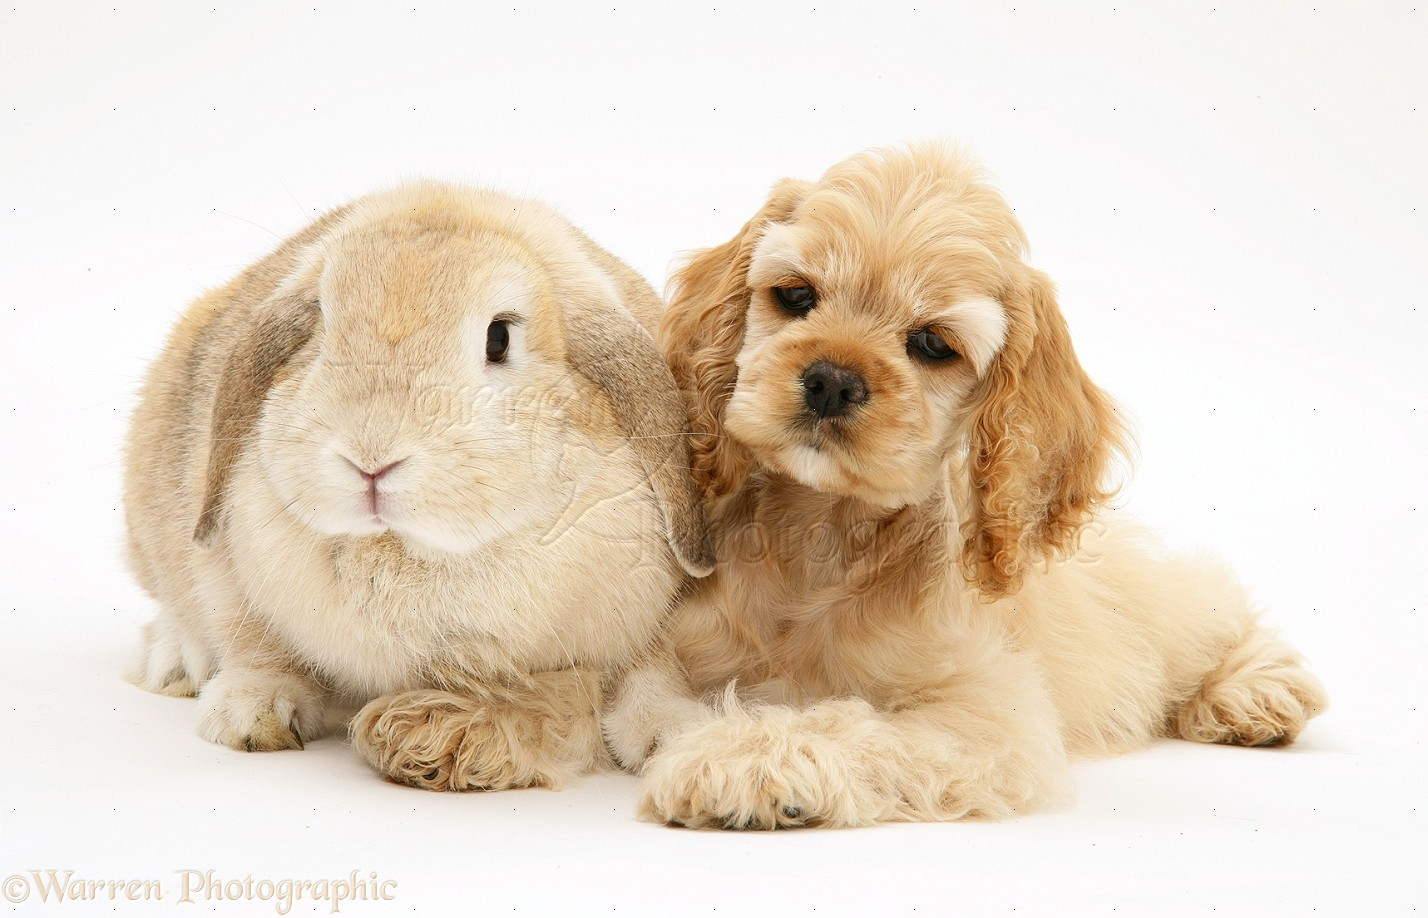 Cute American Cocker Spaniel Puppies: Cute Buff American Cocker Spaniel Pup With Rabbit Breed